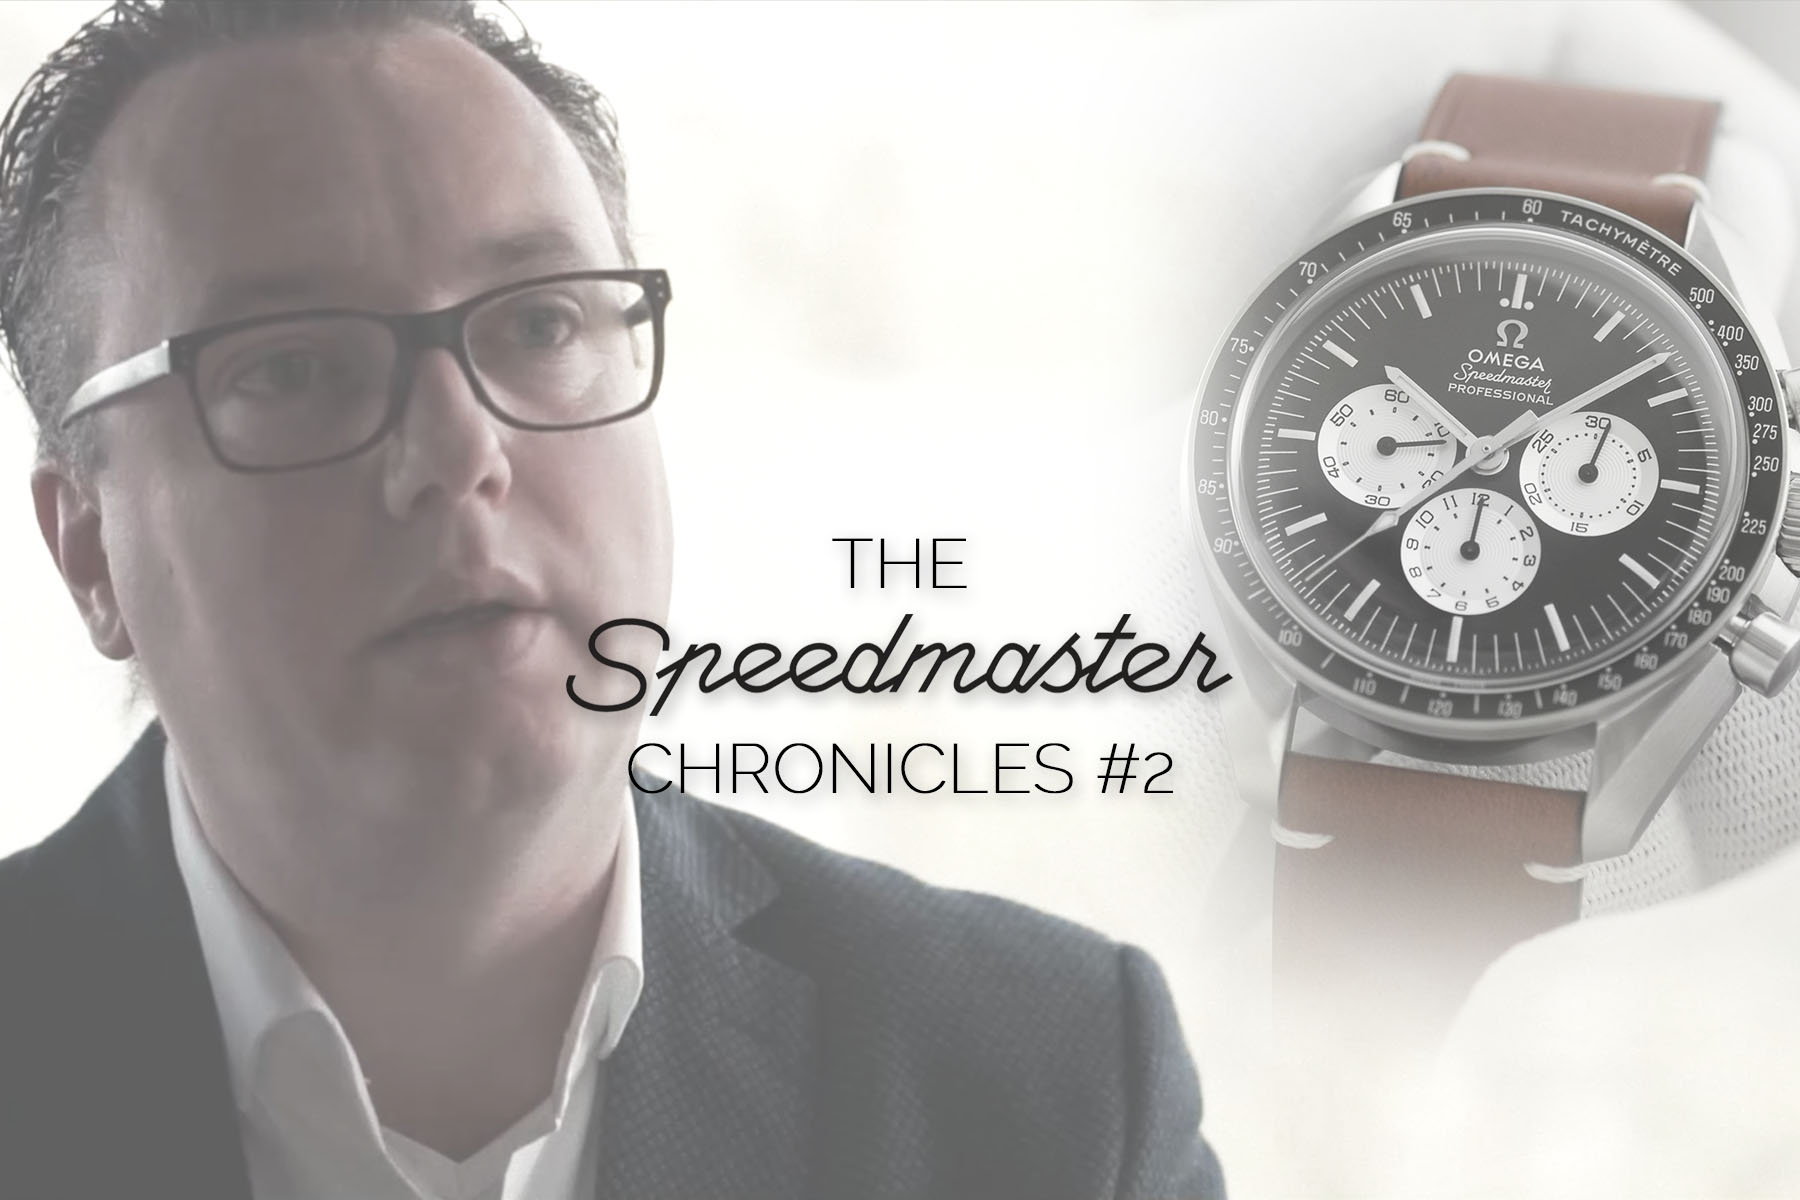 The Speedmaster Chronicles Ep 2 - Robert-Jan Broer Speedy Tuesday